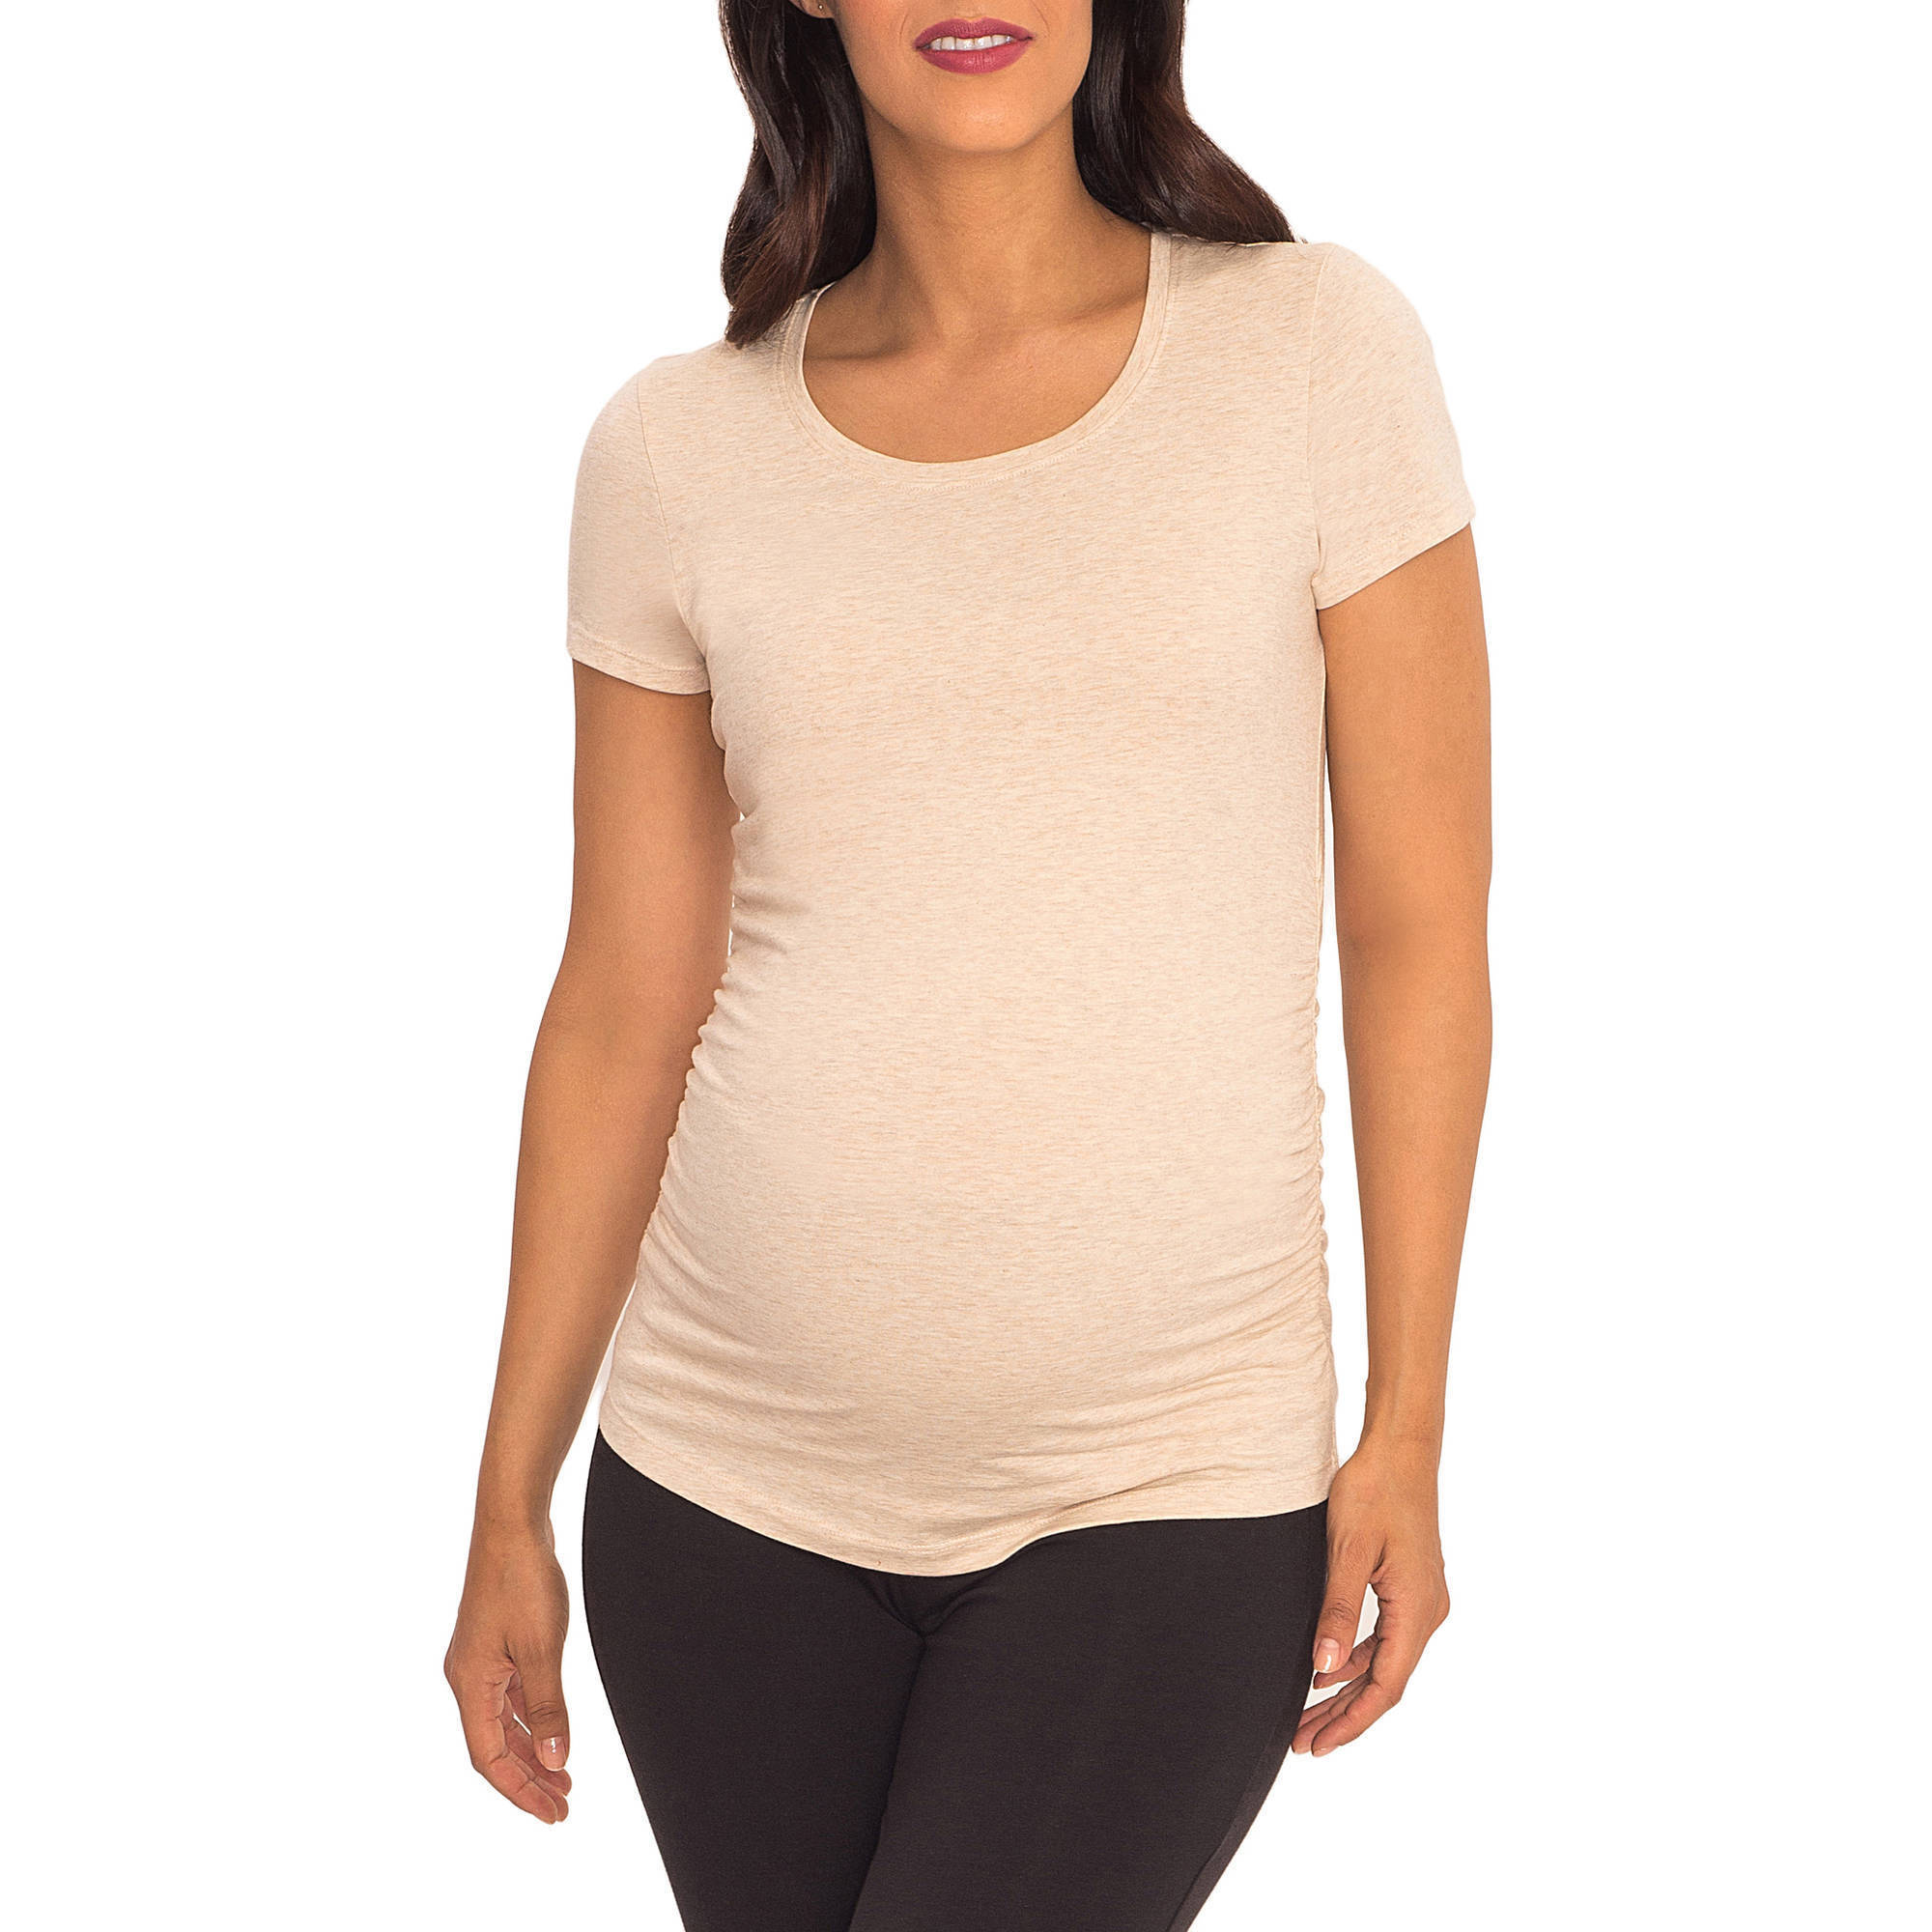 Great Expectations Maternity Short-Sleeve Scoop Neck Tee